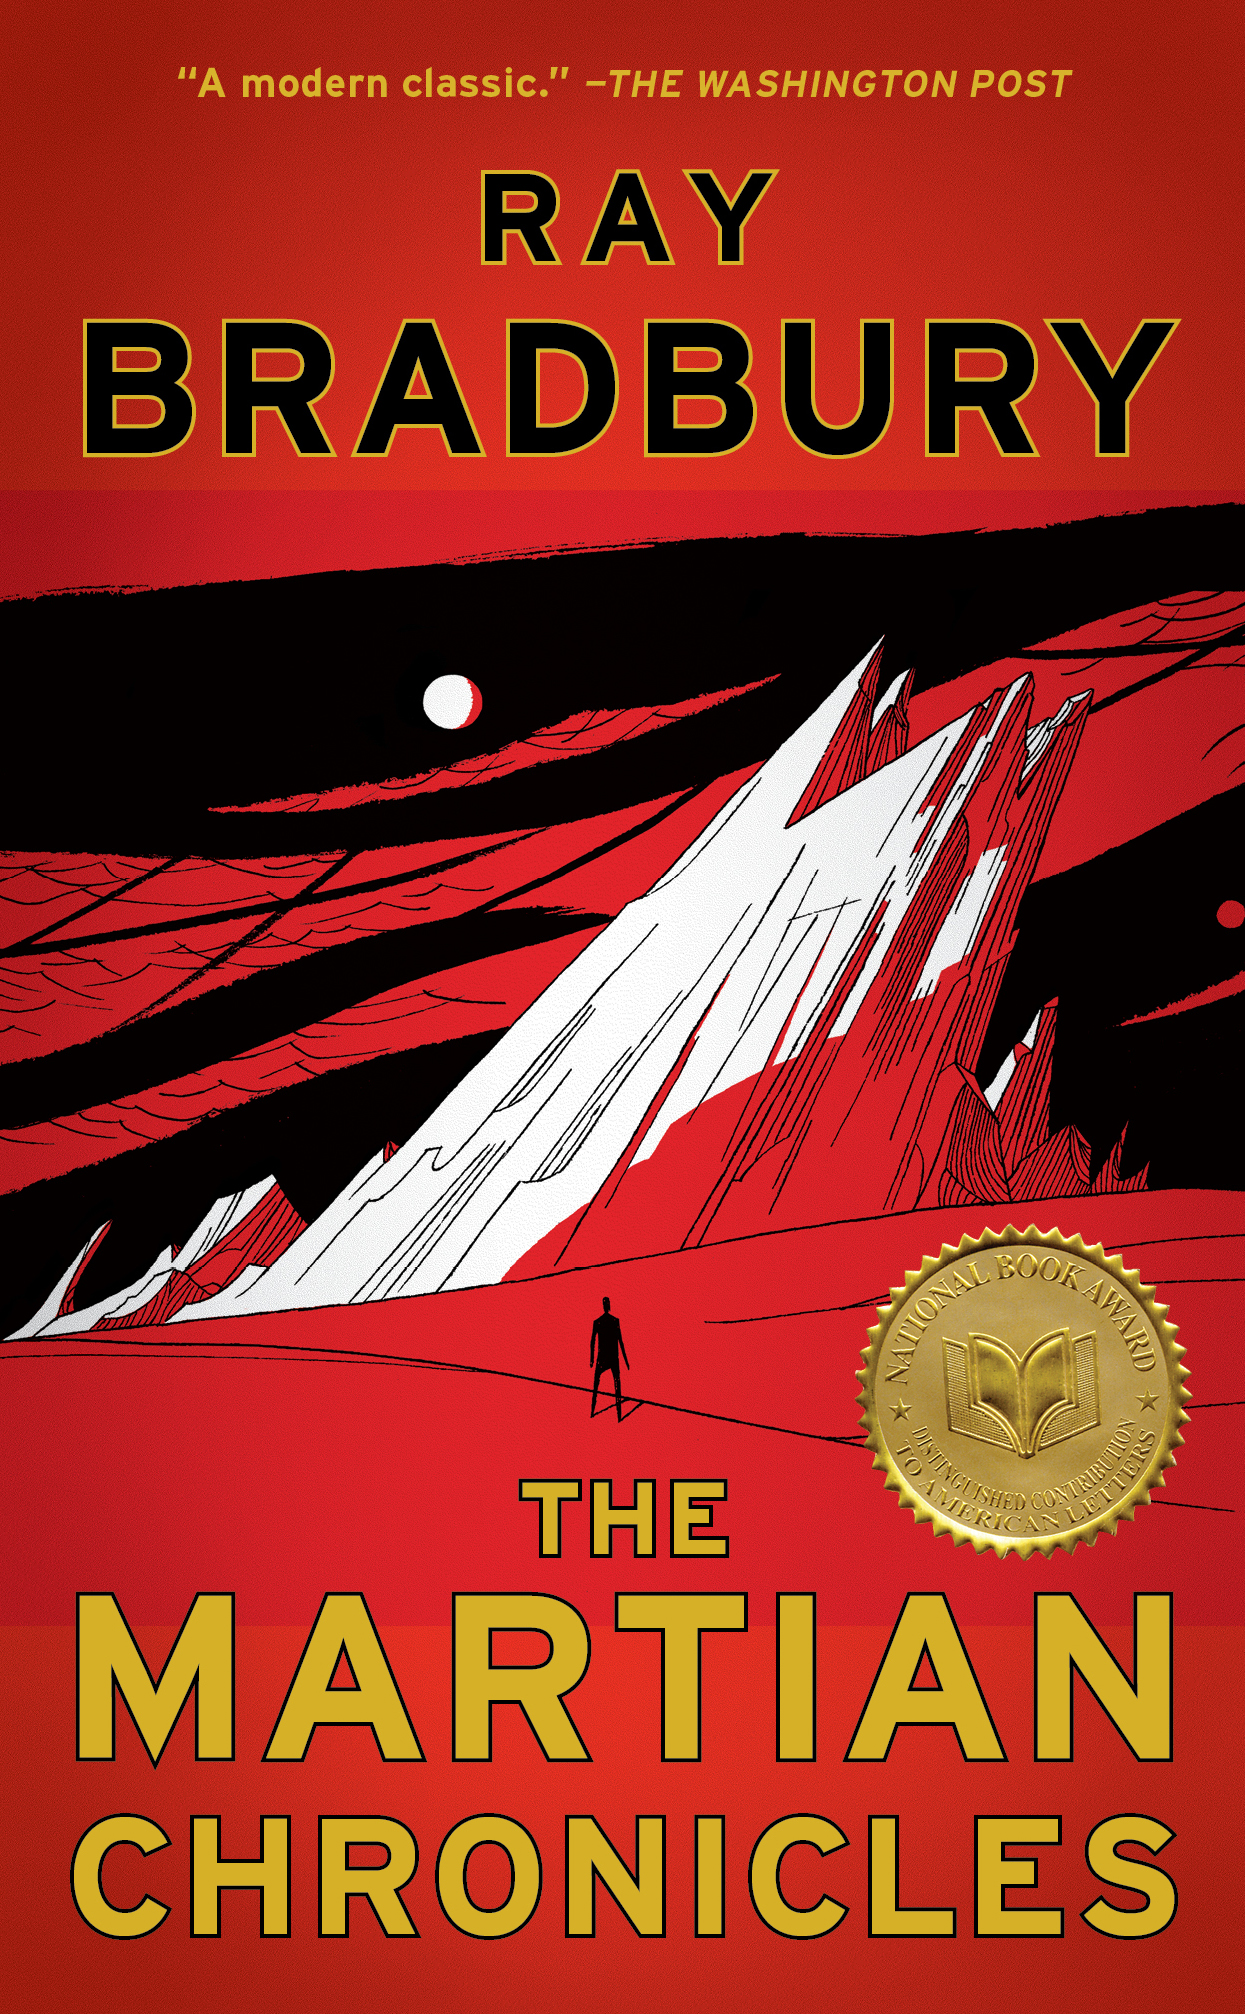 """14) The Martian Chronicles - There are probably better Bradbury novels than The Martian Chronicles - Fahrenheit 451 and Something Wicked This Way Comes to name a few. Still, The Martian Chronicles is worth reading because it's Bradbury at his most sprawling and poignant. Each story lives in its own distinct space at the intersection of humanity and the alien unknown, but what truly makes the The Martian Chronicles powerful is the forlorn way in which change abandons and disparages the past. This quote from the novel sums it up perfectly: """"All the things which had uses. All the mountains which had names. We'll give them new names, but the old names are there, somewhere in time..."""